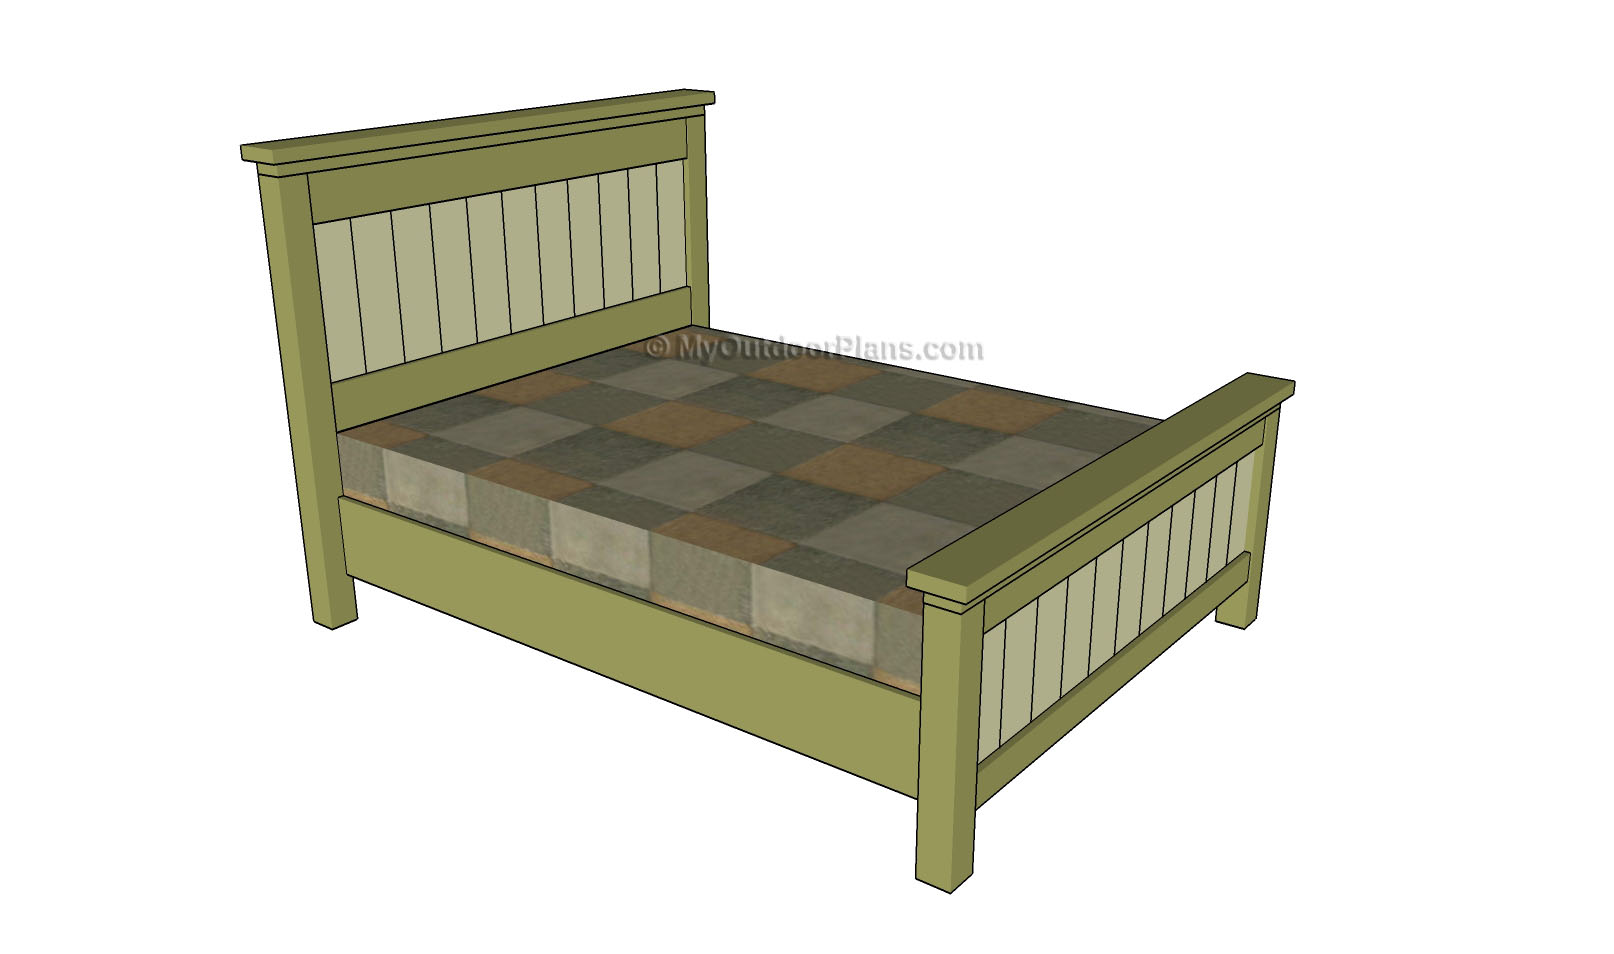 King size bed frame plans myoutdoorplans free